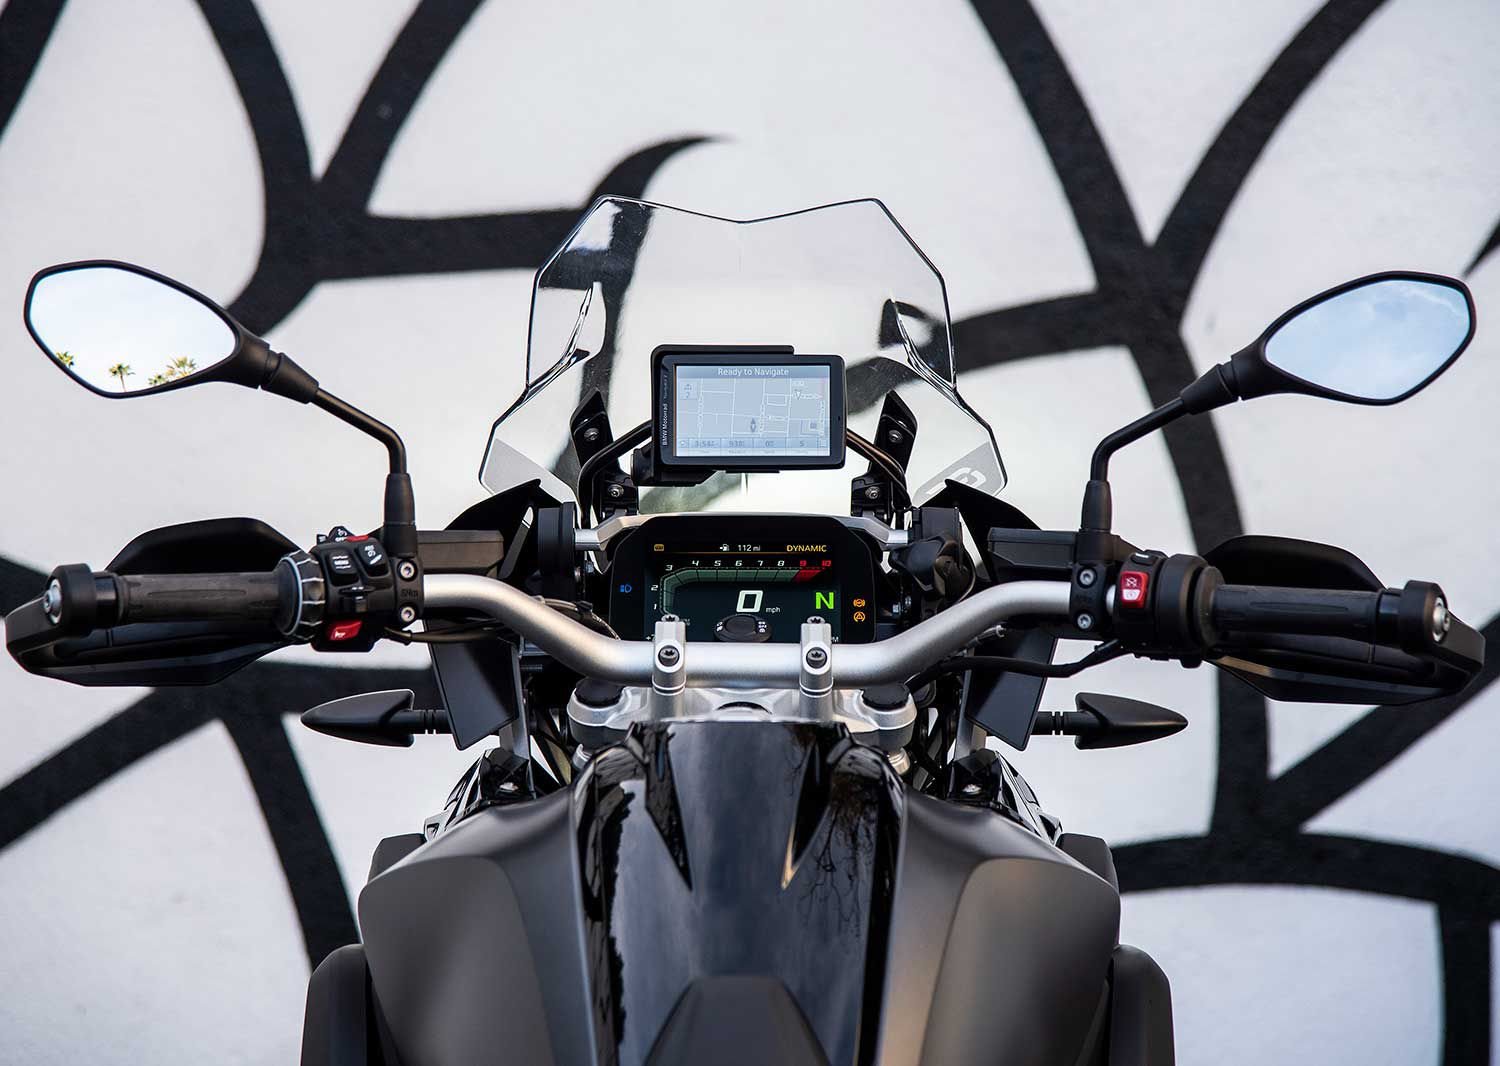 The cockpit view, with the windshield in its lowest setting, reveals a relatively compact set of controls despite the relative heft of the bike.